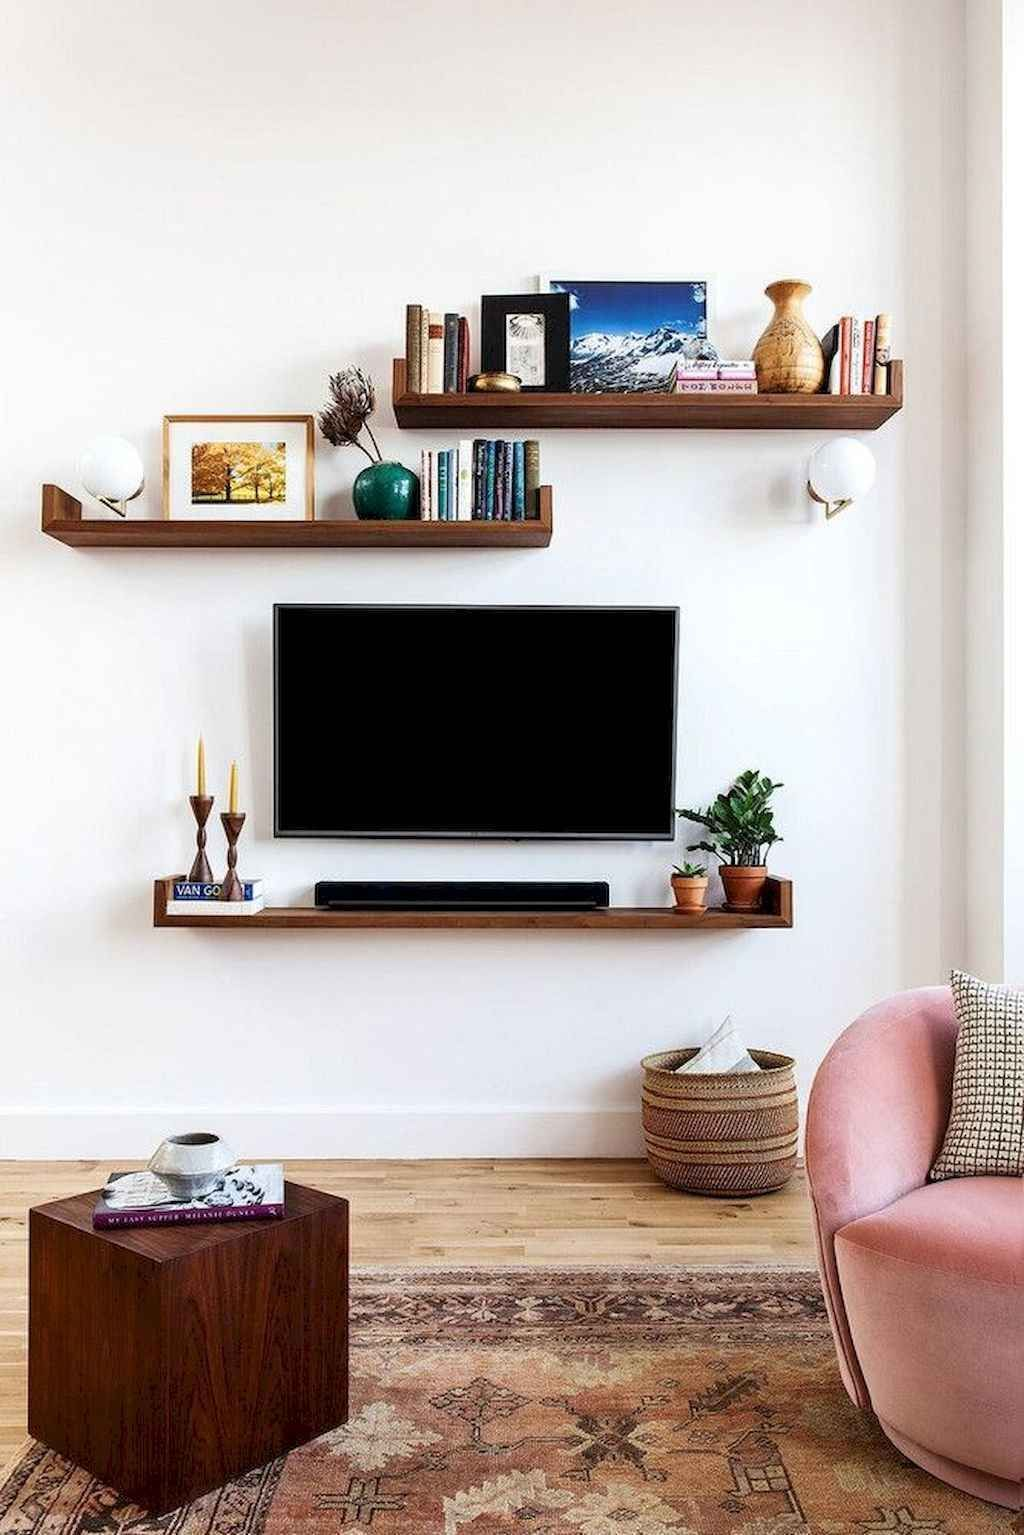 Small Bedroom Wall Shelving Ideas Floating Shelves Living Room Living Room Decor Modern Living Room Tv Wall #wall #mounted #shelves #living #room